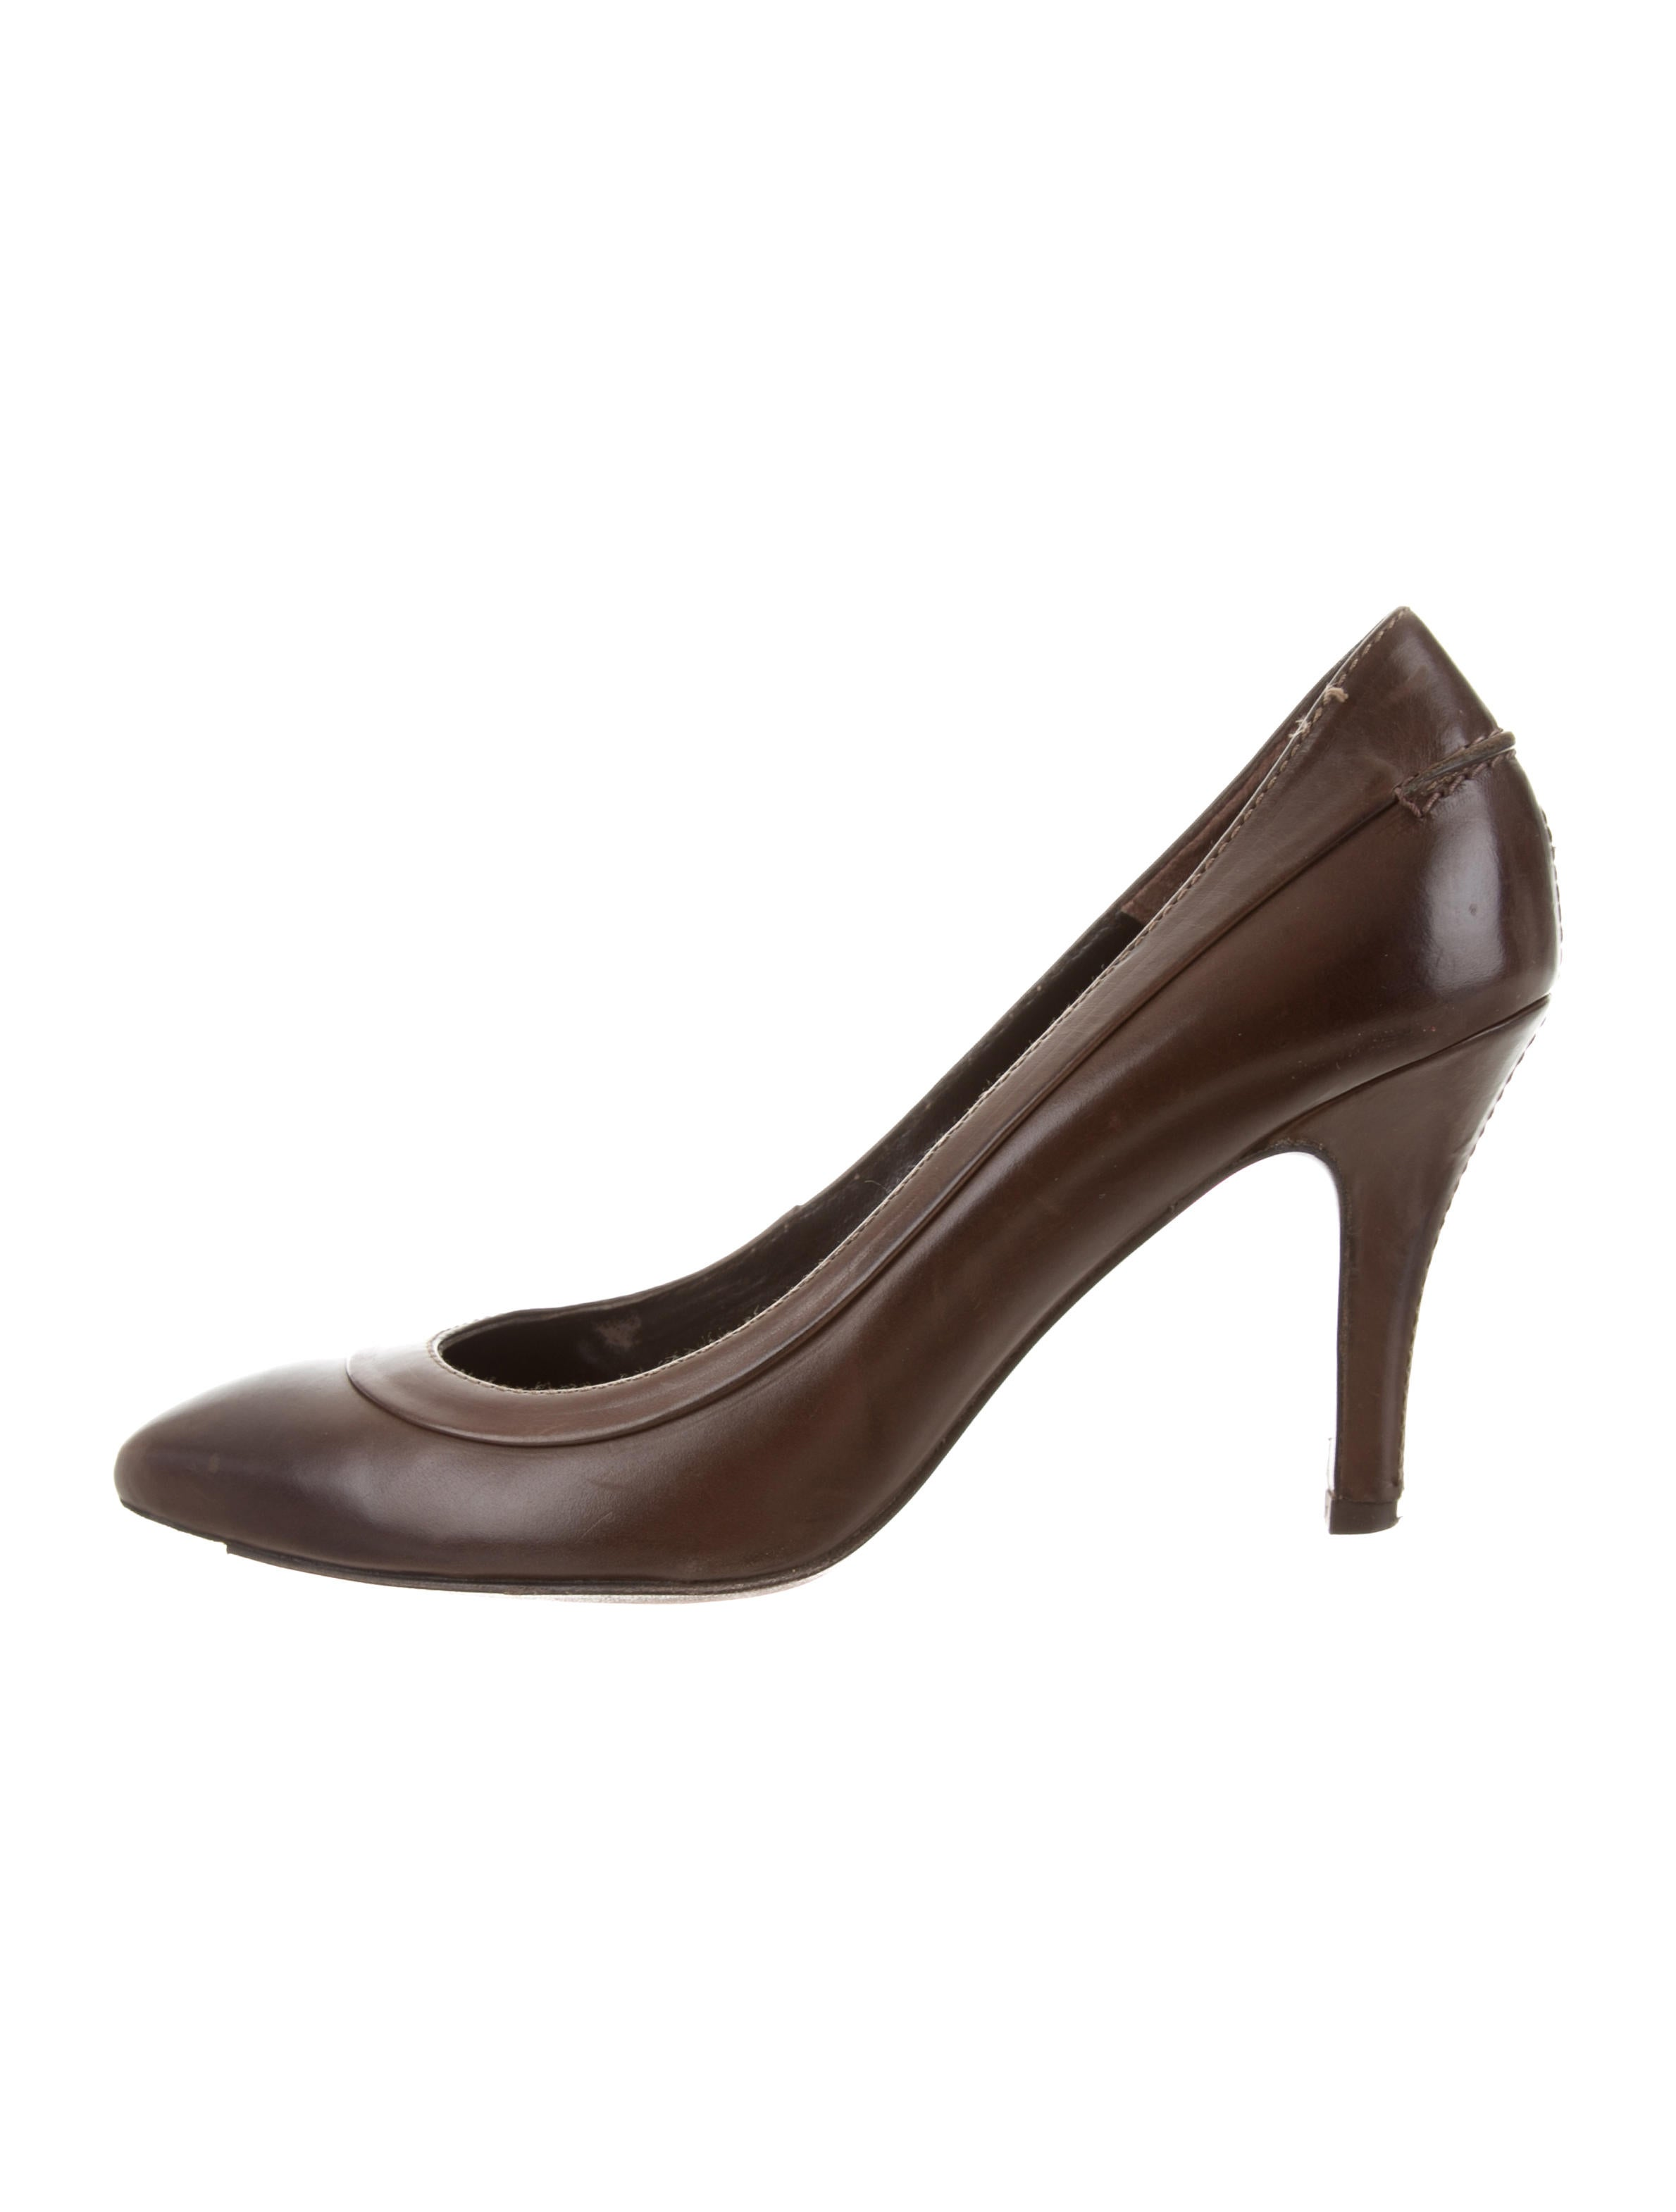 n.d.c. Leather Pointed-Toe Pumps genuine cheap online buy cheap choice j9CFeZ